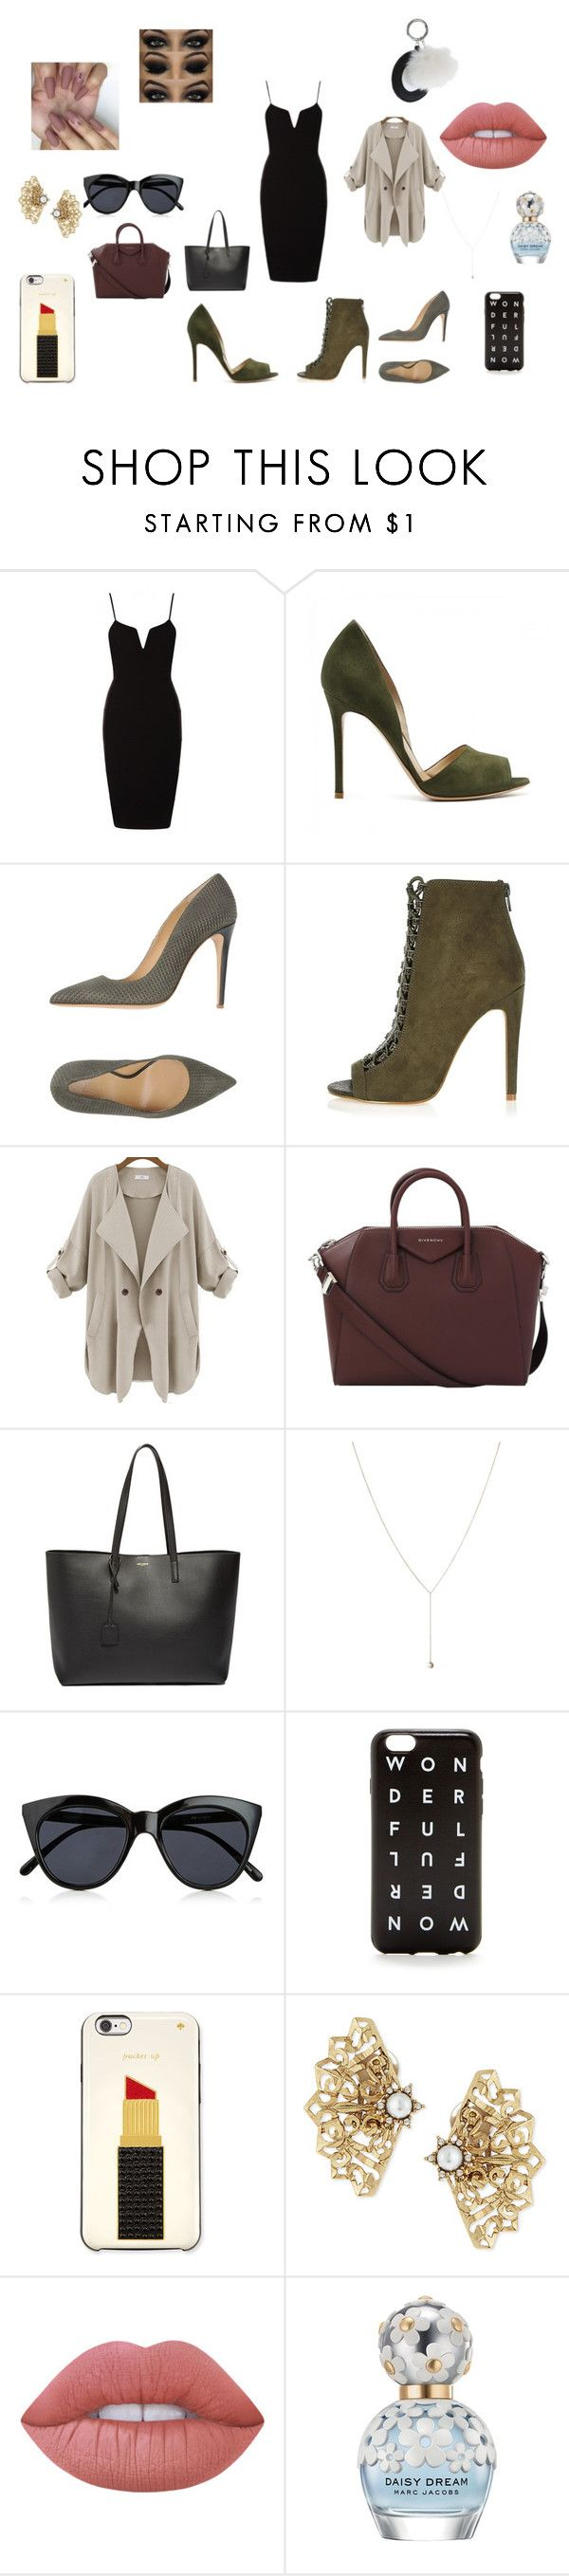 """Untitled #106"" by rosesanders on Polyvore featuring Armani Collezioni, River Island, Givenchy, Yves Saint Laurent, Le Specs, J.Crew, Kate Spade, Oscar de la Renta, Lime Crime and Marc Jacobs"